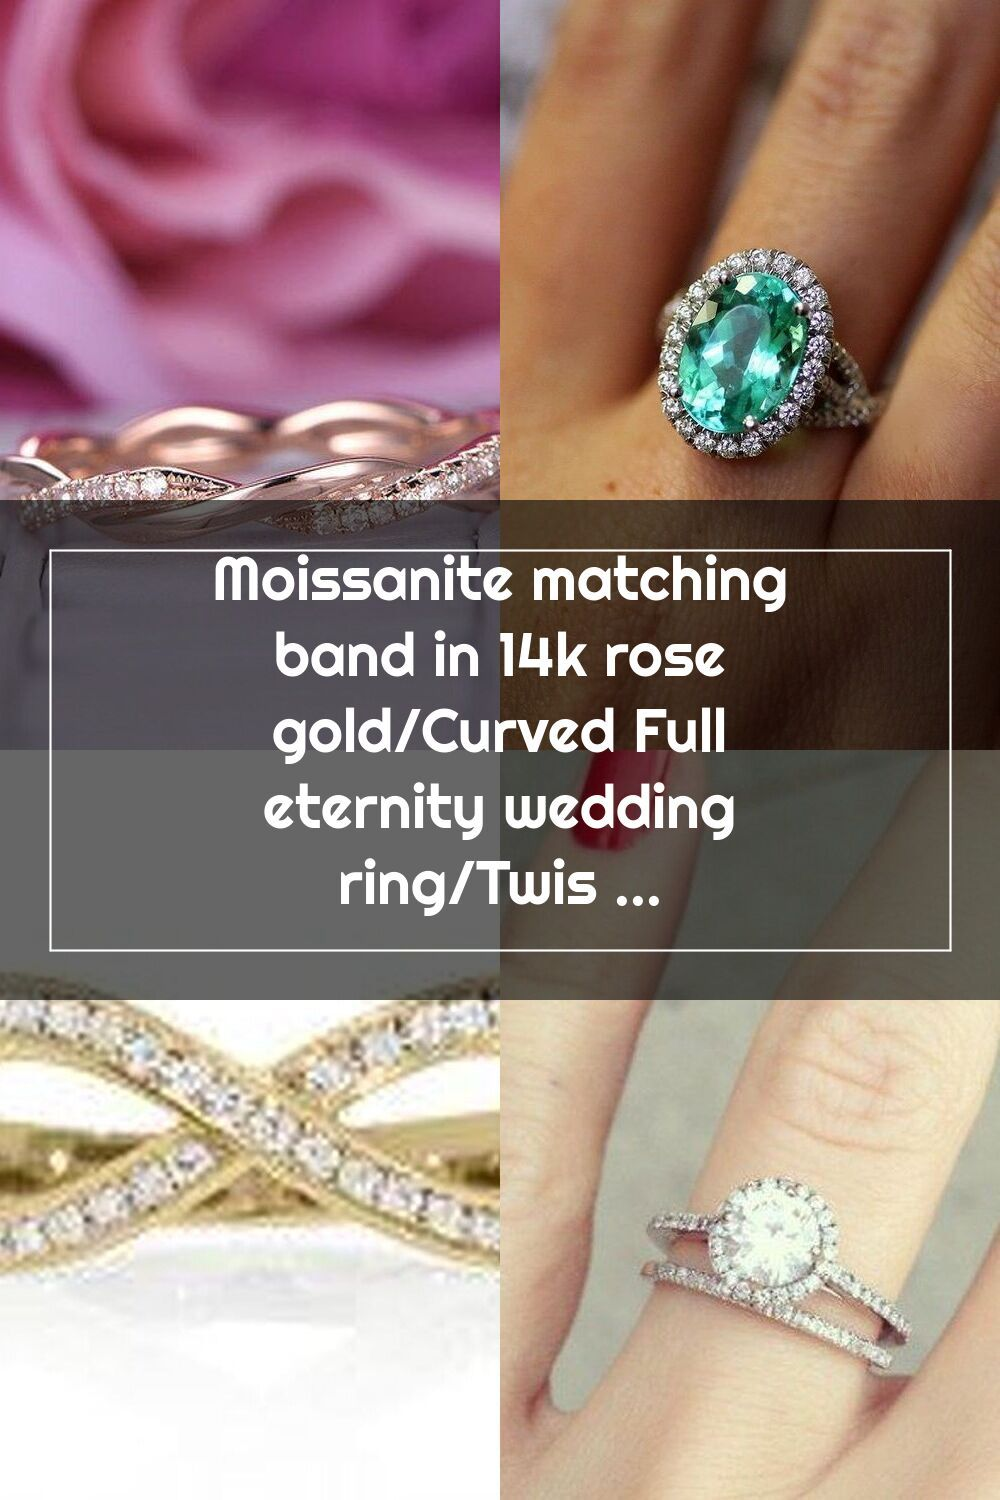 Moissanite matching band in 14k rose gold/Curved Full